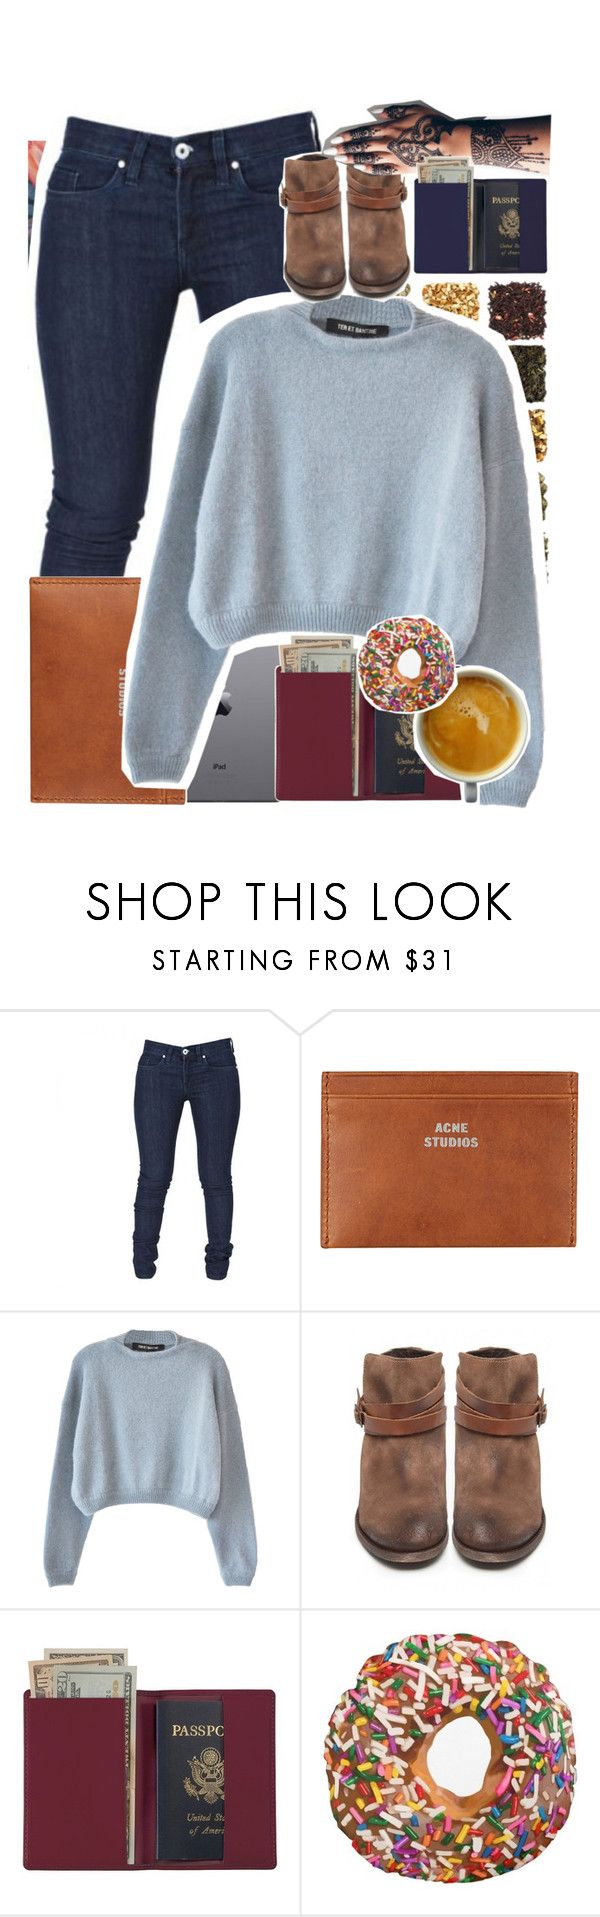 """""""Dammit Michael pay attention"""" by biteesizedd ❤ liked on Polyvore featuring Acne Studios, Ter Et Bantine, H by Hudson, Royce Leather, women's clothing, women, female, woman, misses and juniors"""